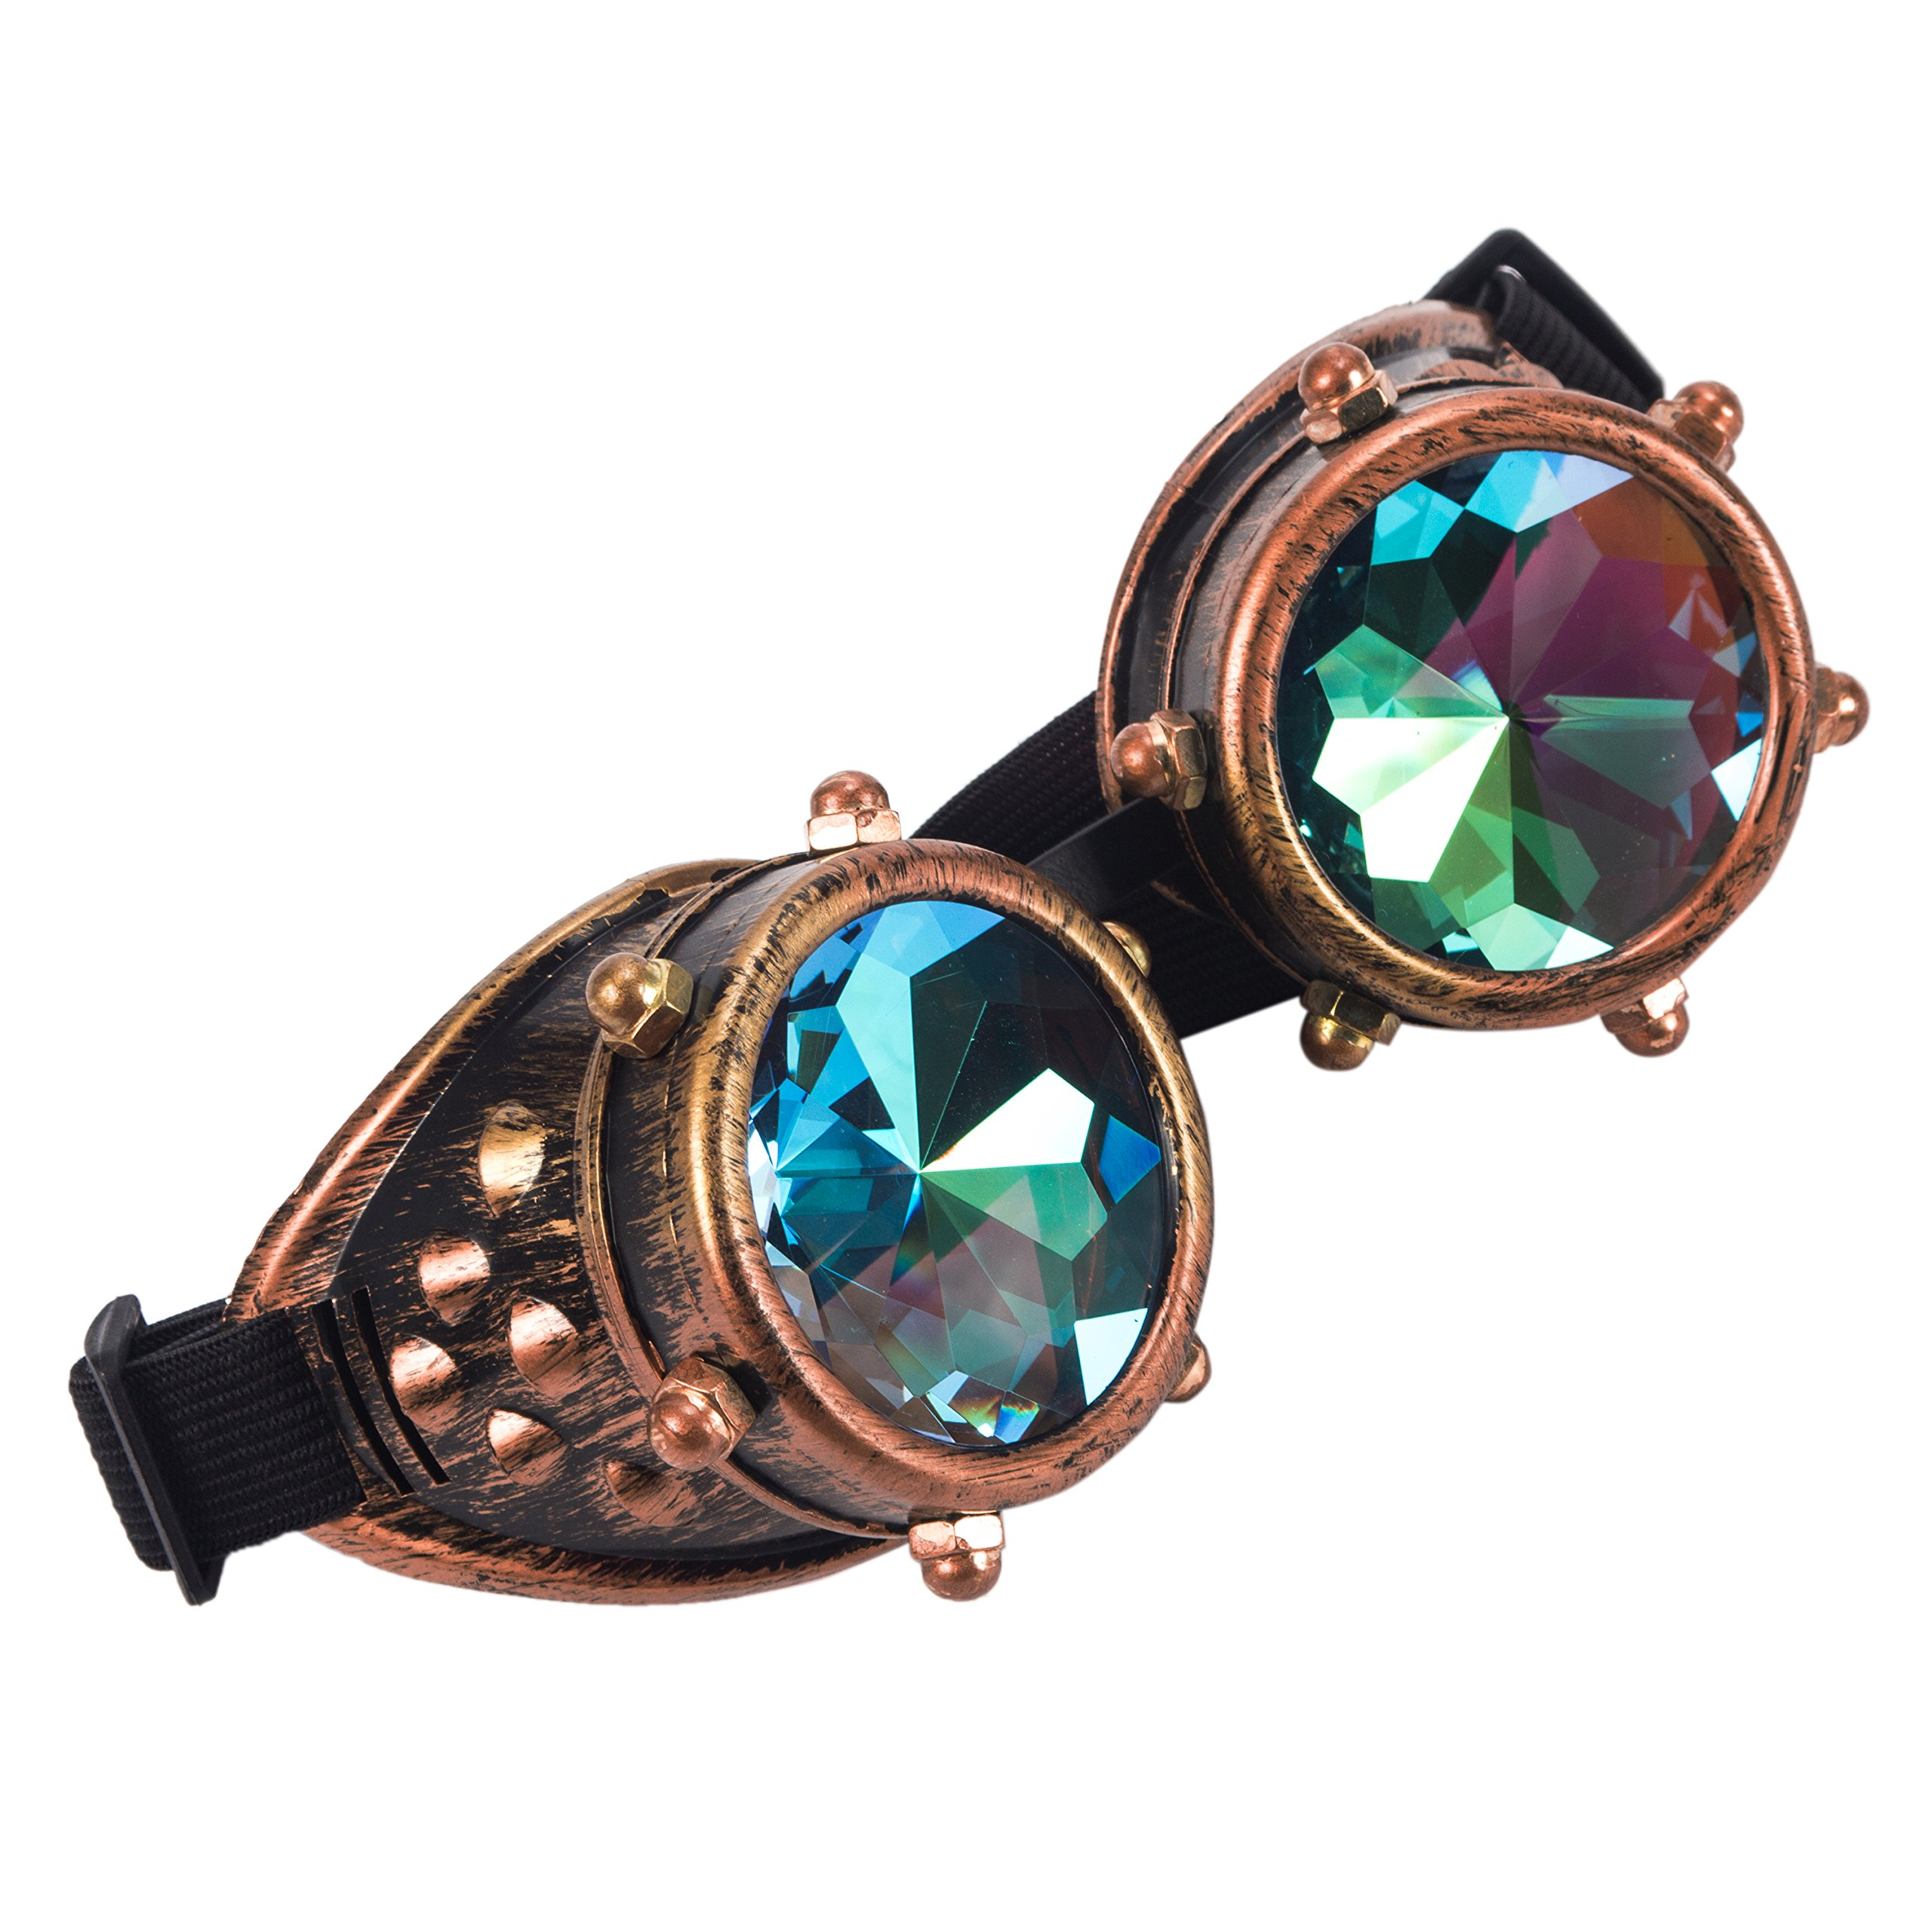 Kaleidoscope Rave Goggles Steampunk Glasses with Rainbow Crystal Glass Lens (One Size-Adjustable head band, Copper-New Style)